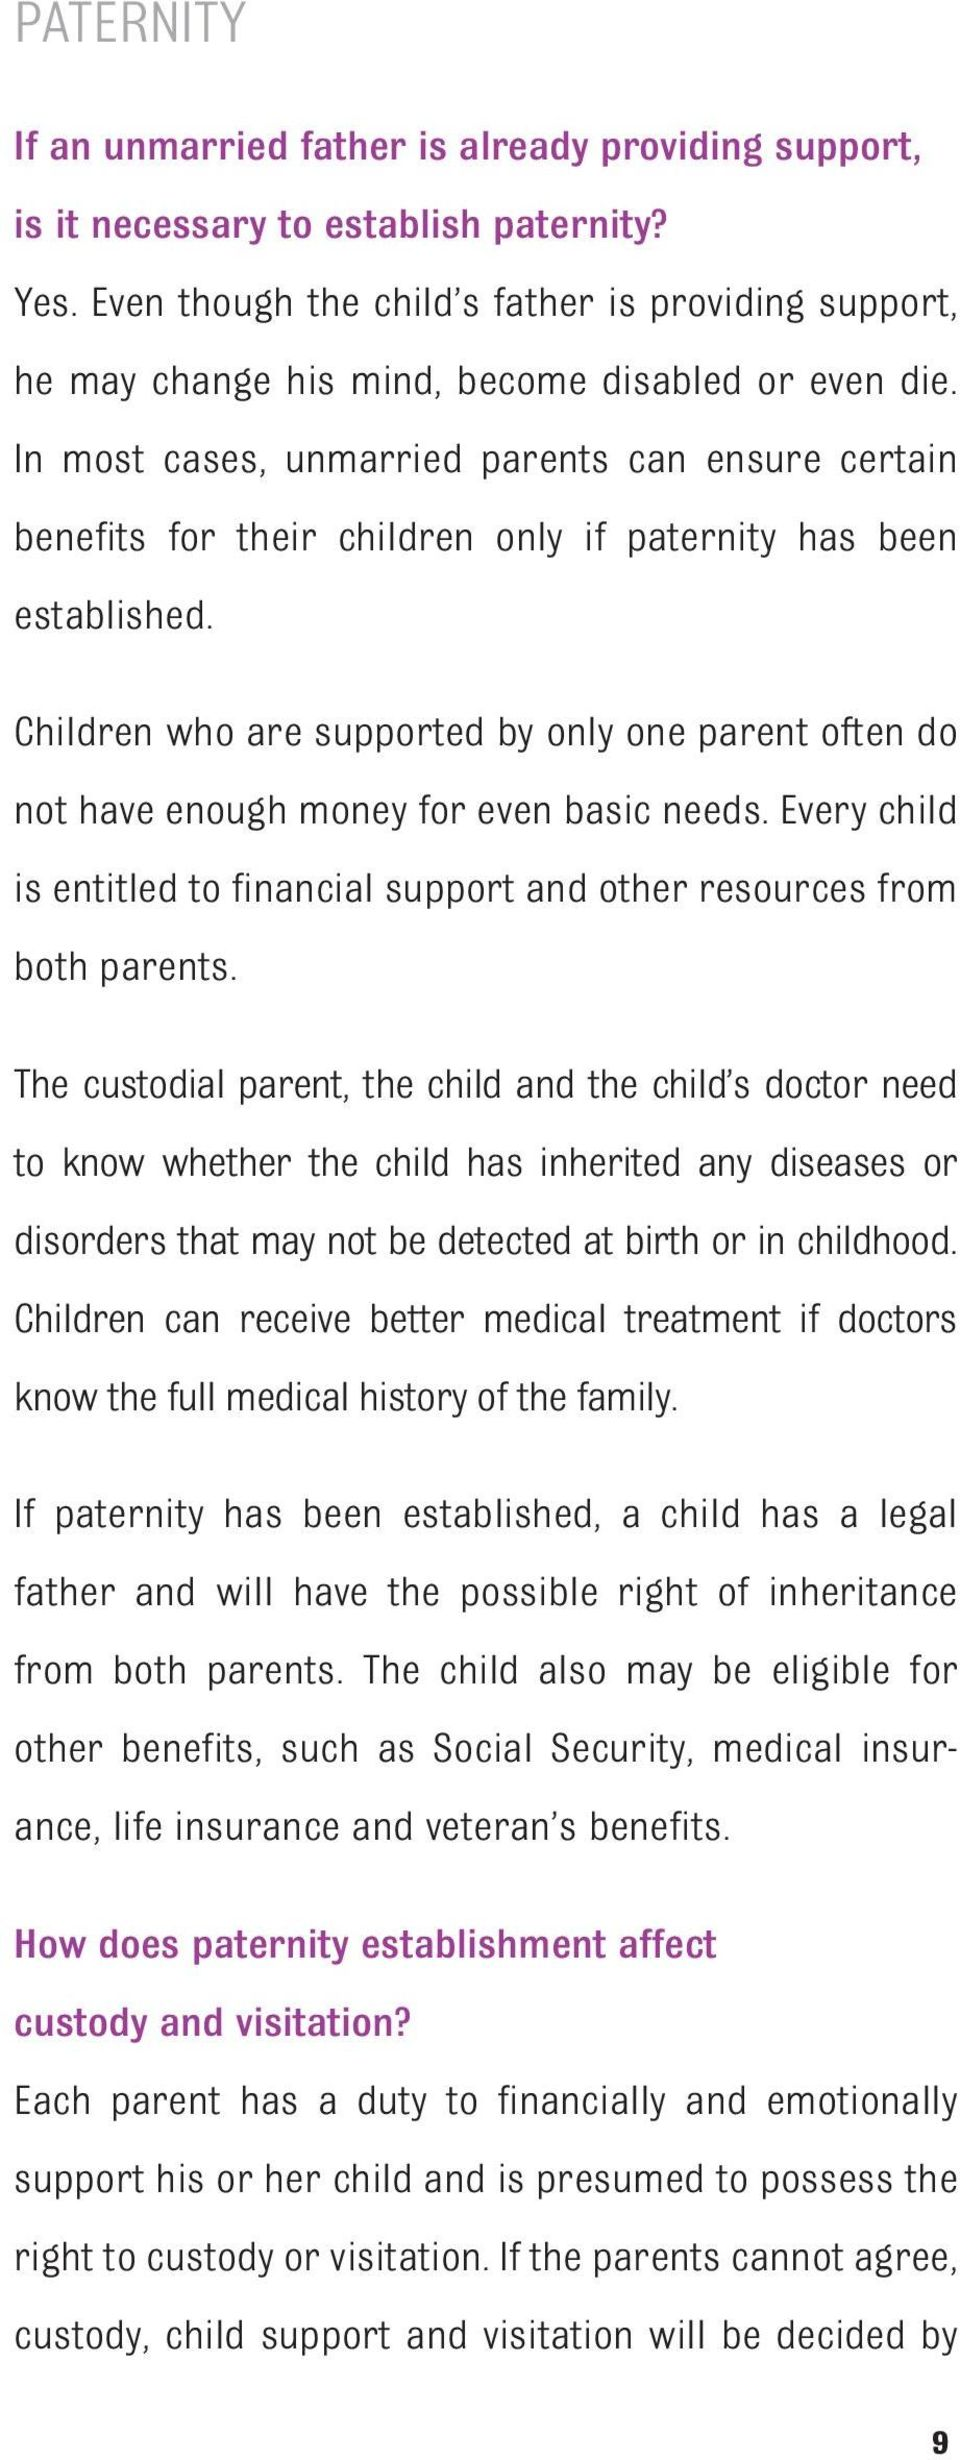 In most cases, unmarried parents can ensure certain benefits for their children only if paternity has been established.